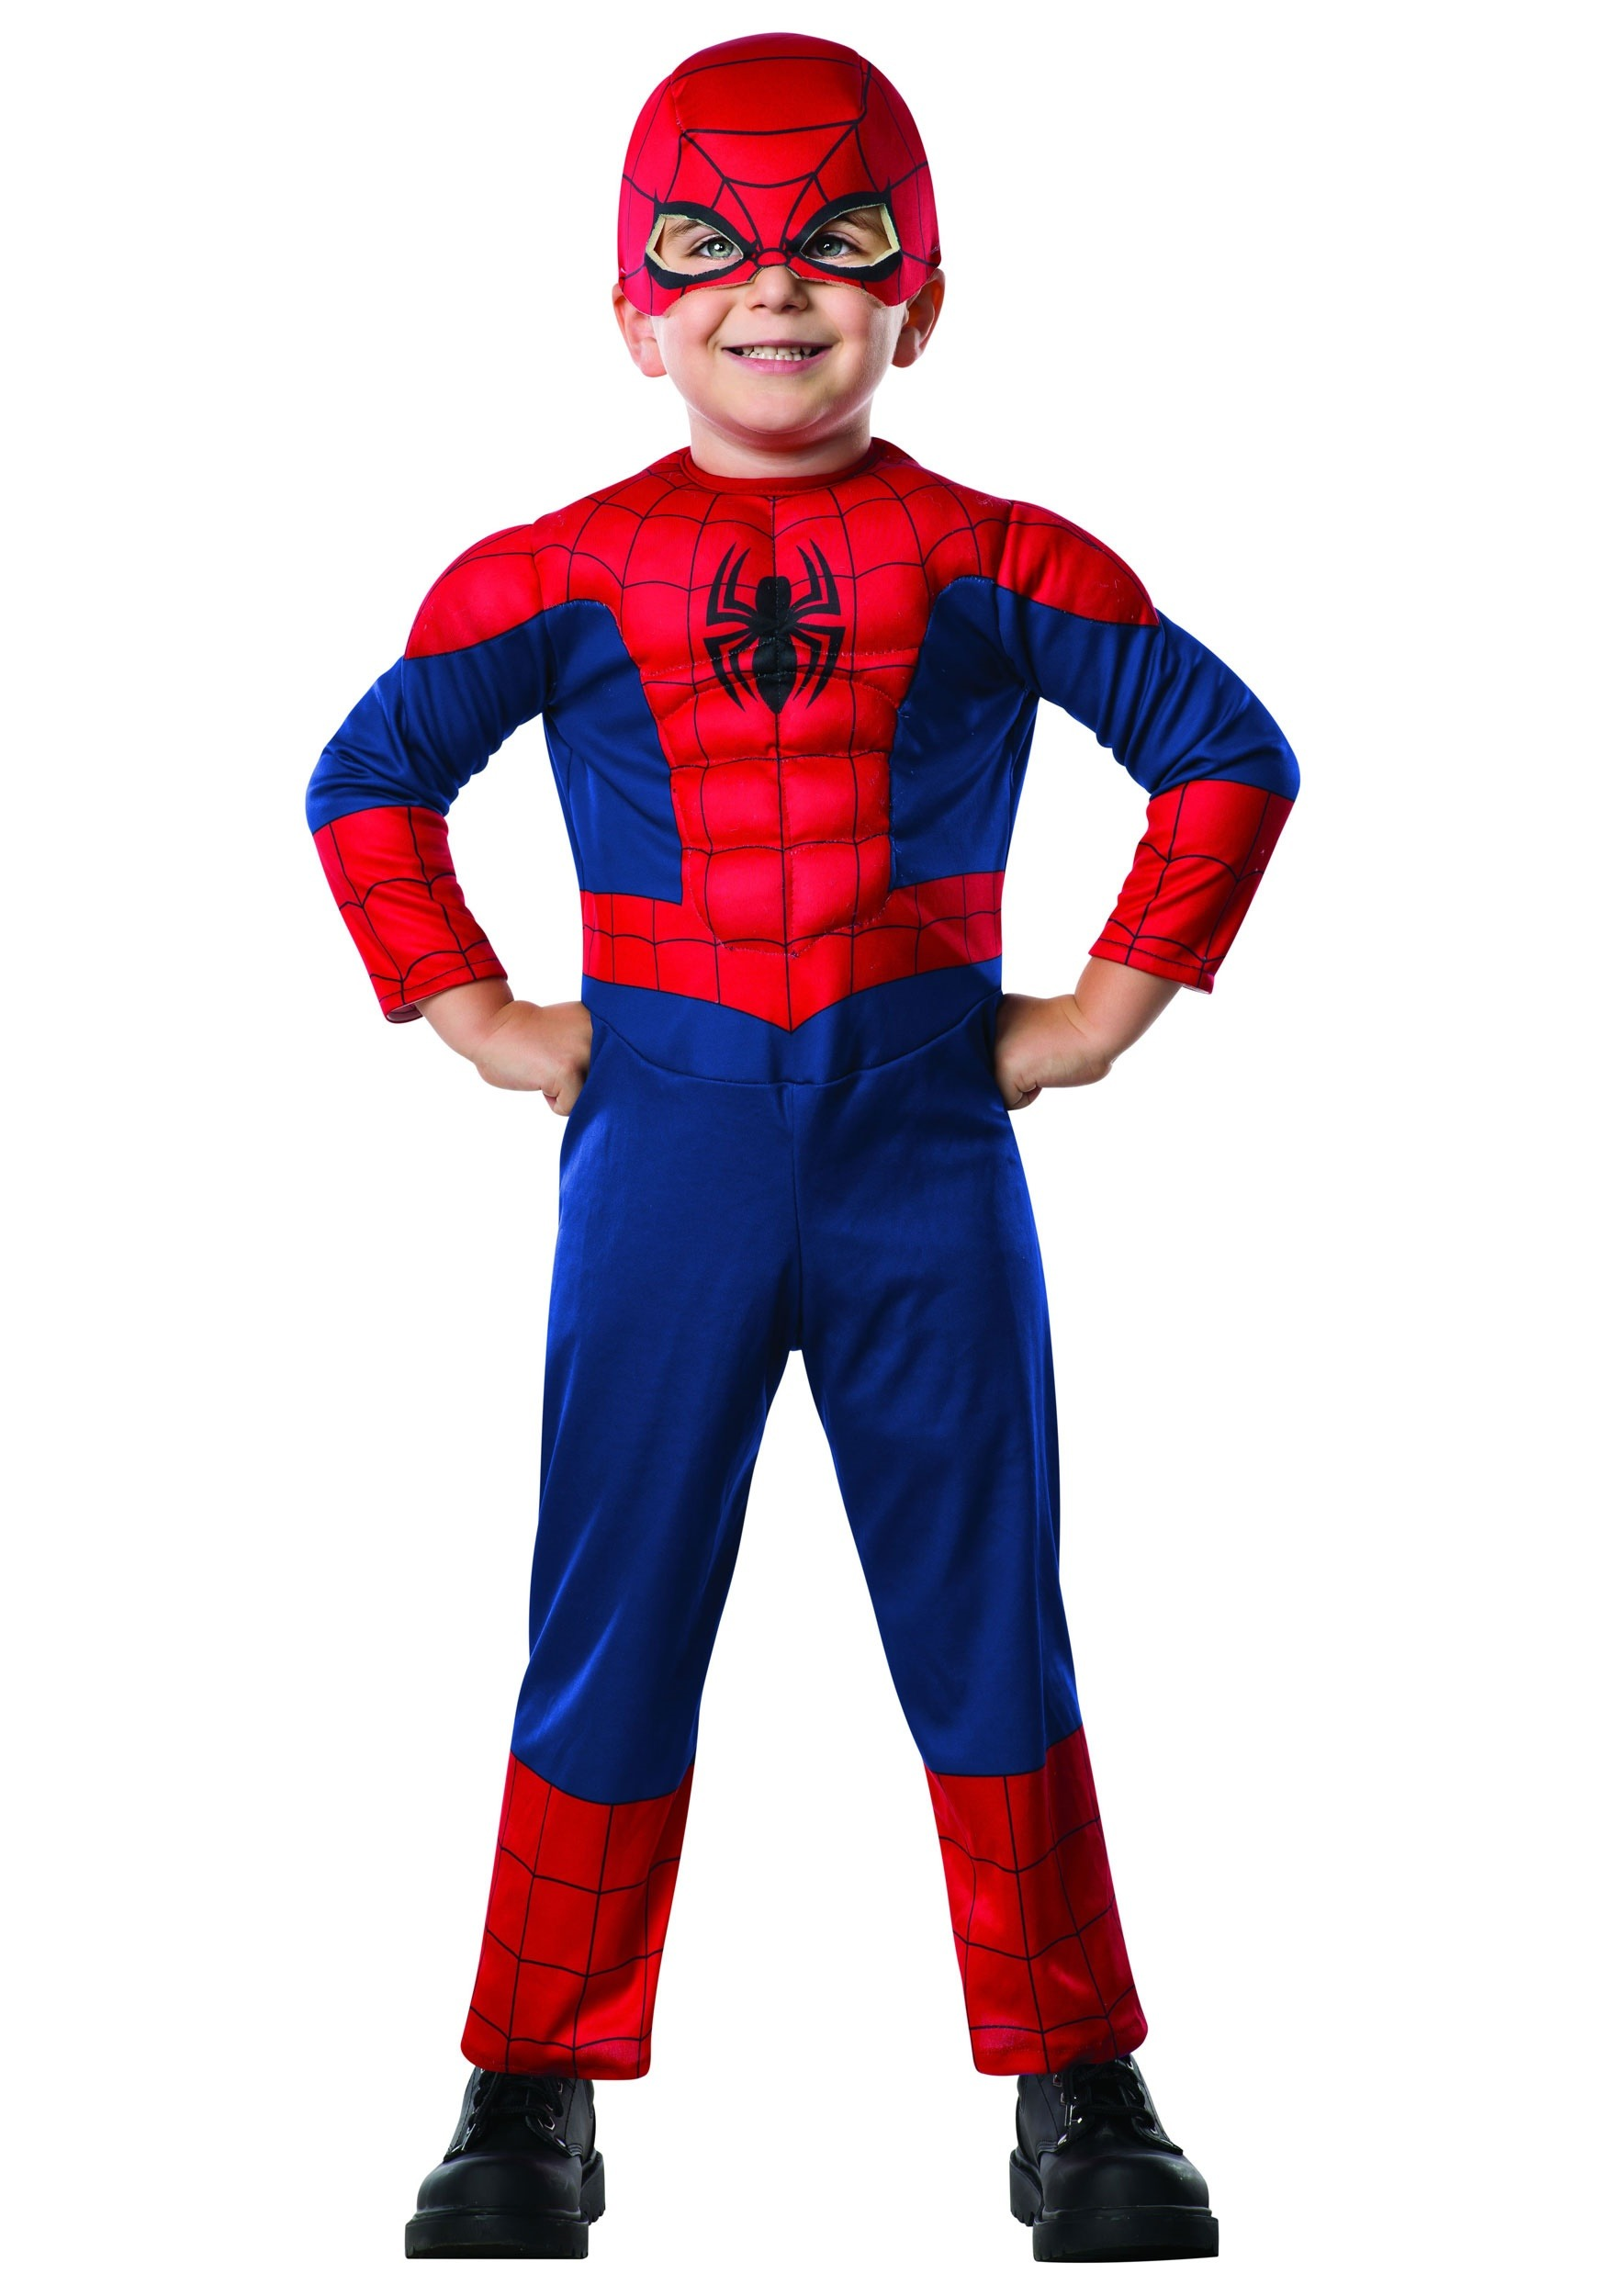 Spider-Man Toddler Costume  sc 1 st  Halloween Costumes & Spider-Man Costume for Toddlers